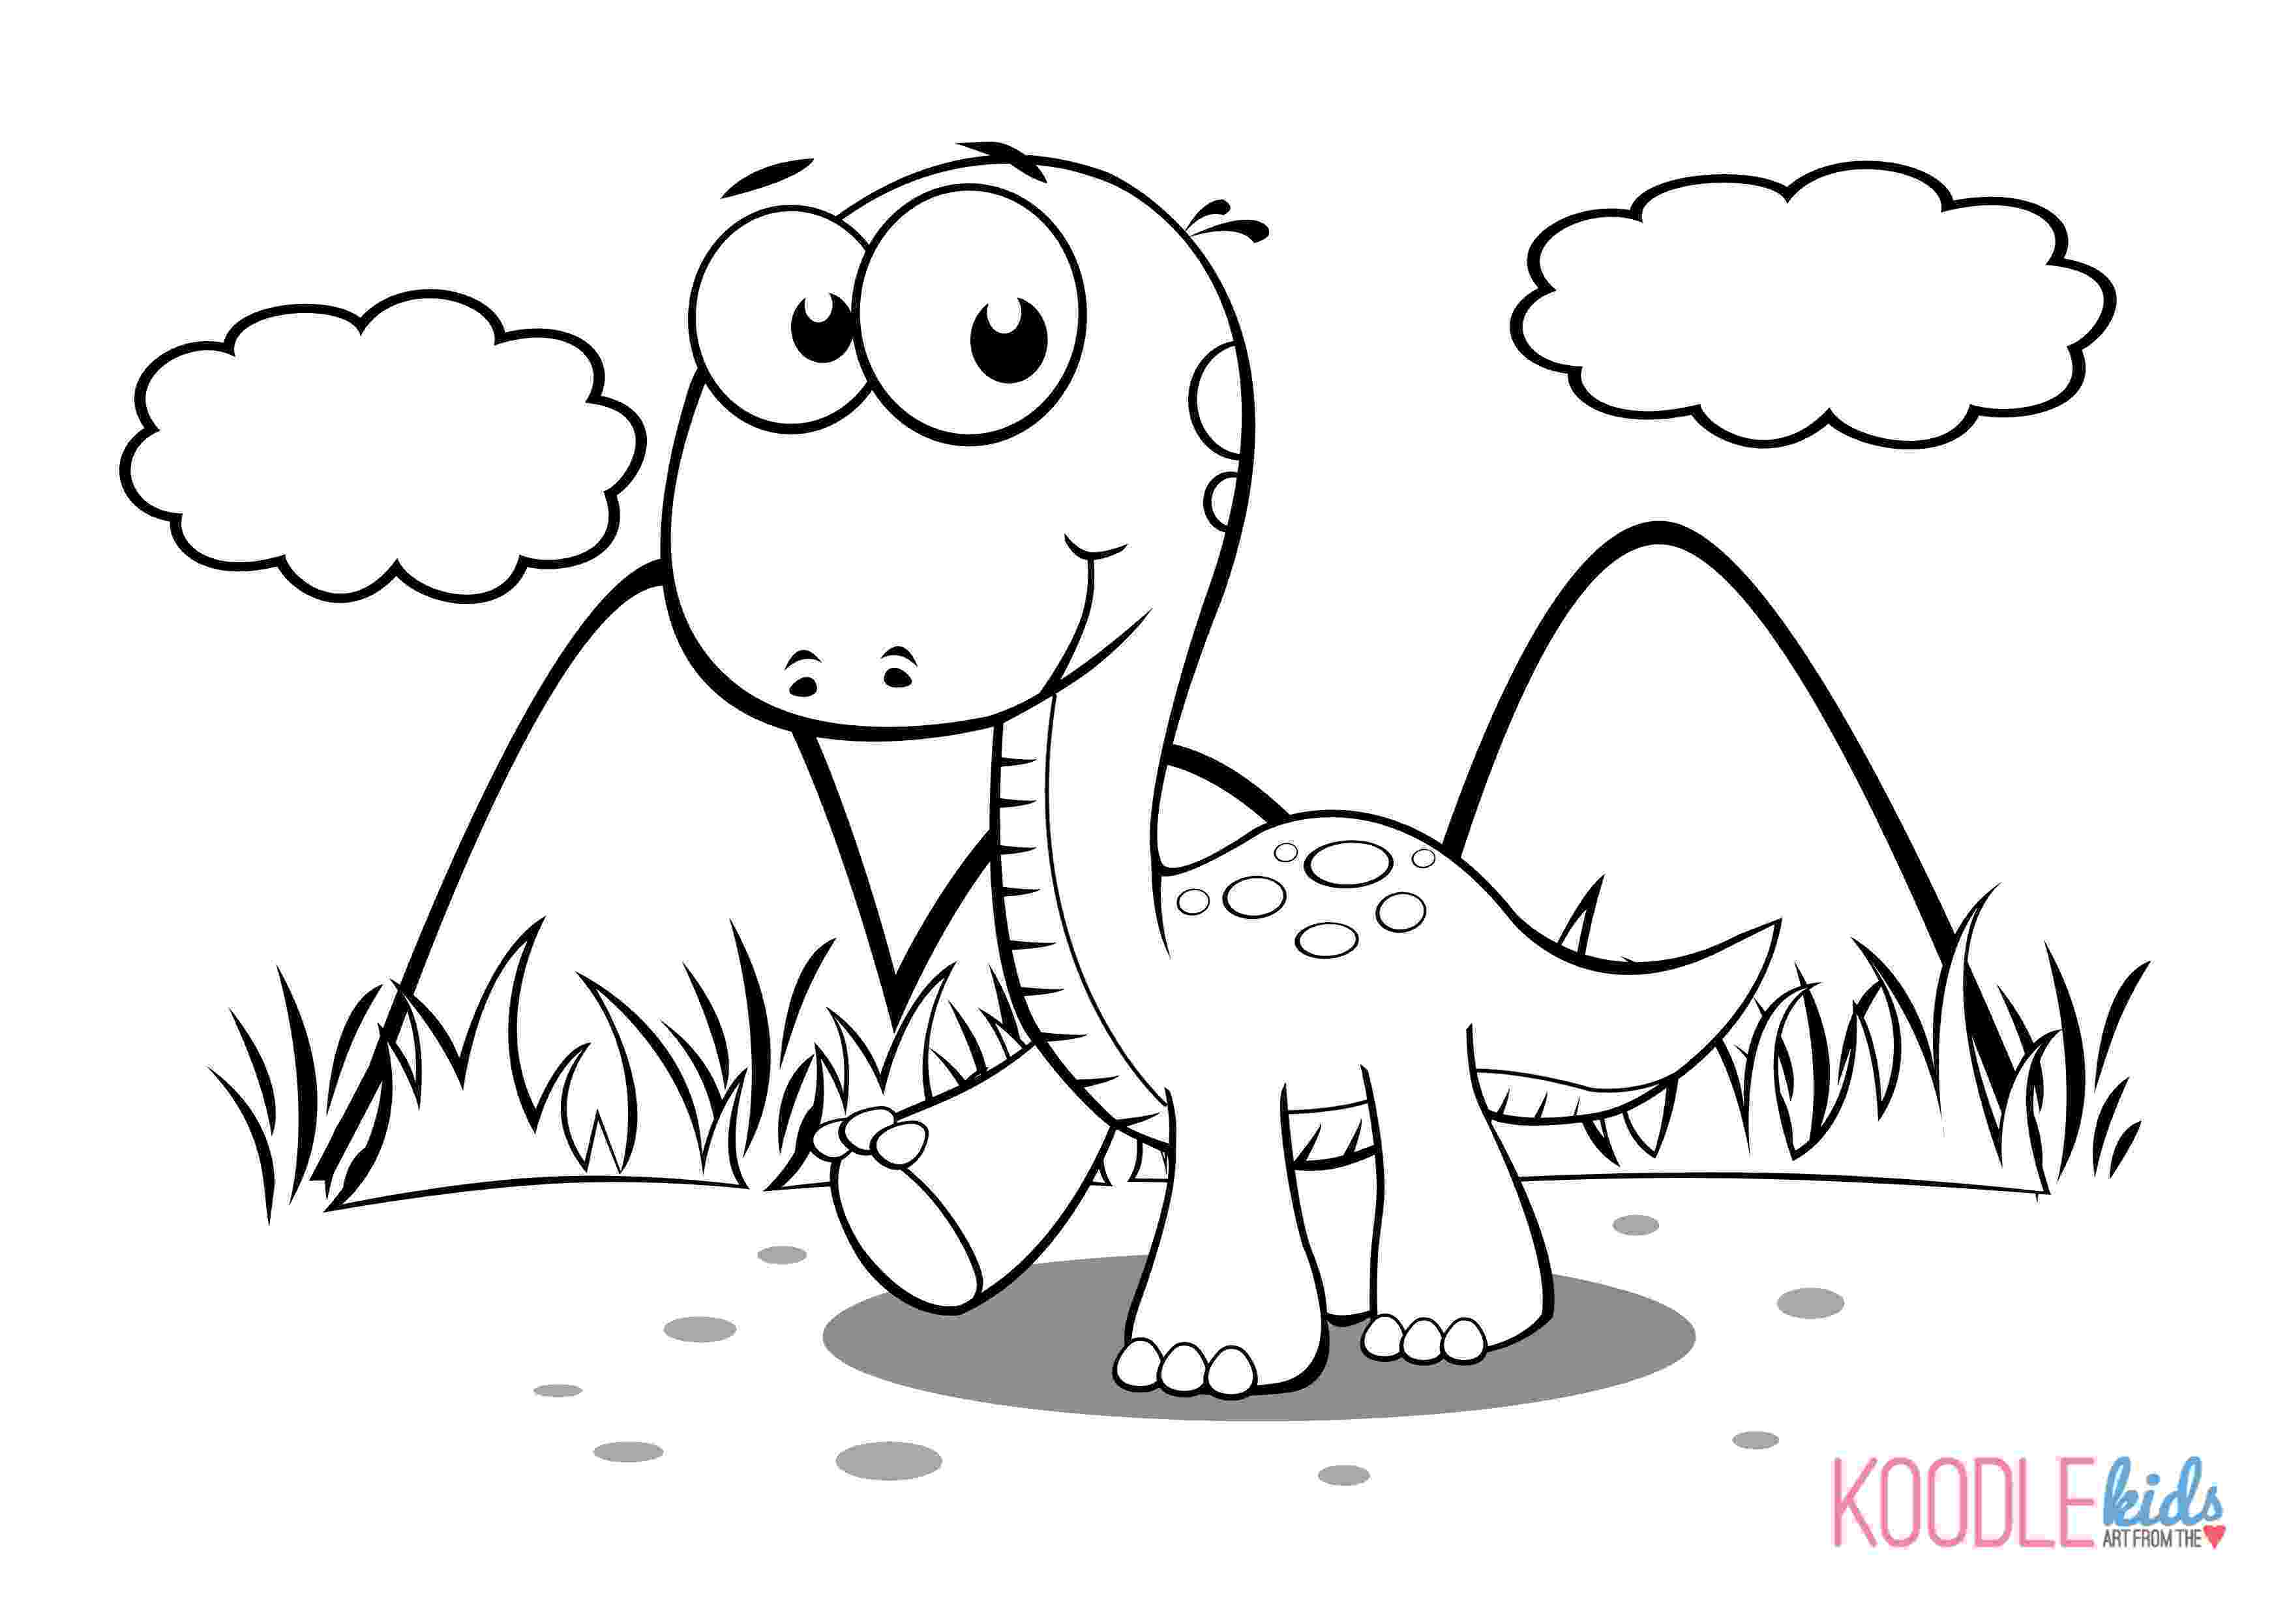 pictures of dinosaurs to print dinosaurs coloring pages printable minister coloring to print dinosaurs pictures of